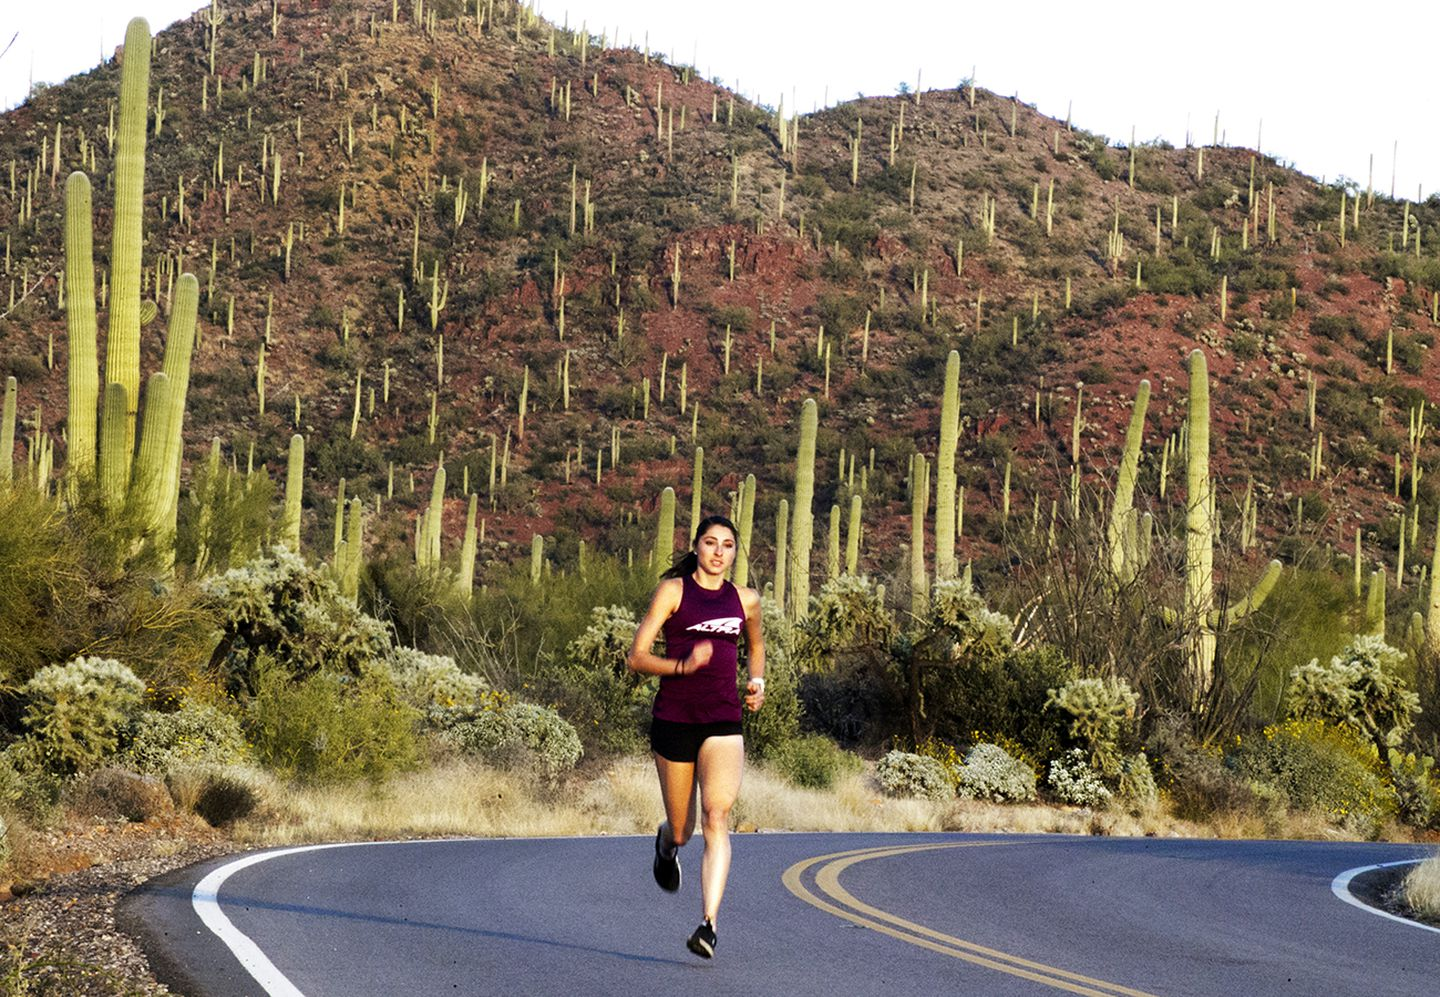 Sarah Sellers, seen training in Tucson, got a mountain of publicity after last year's second-place finish in Boston.